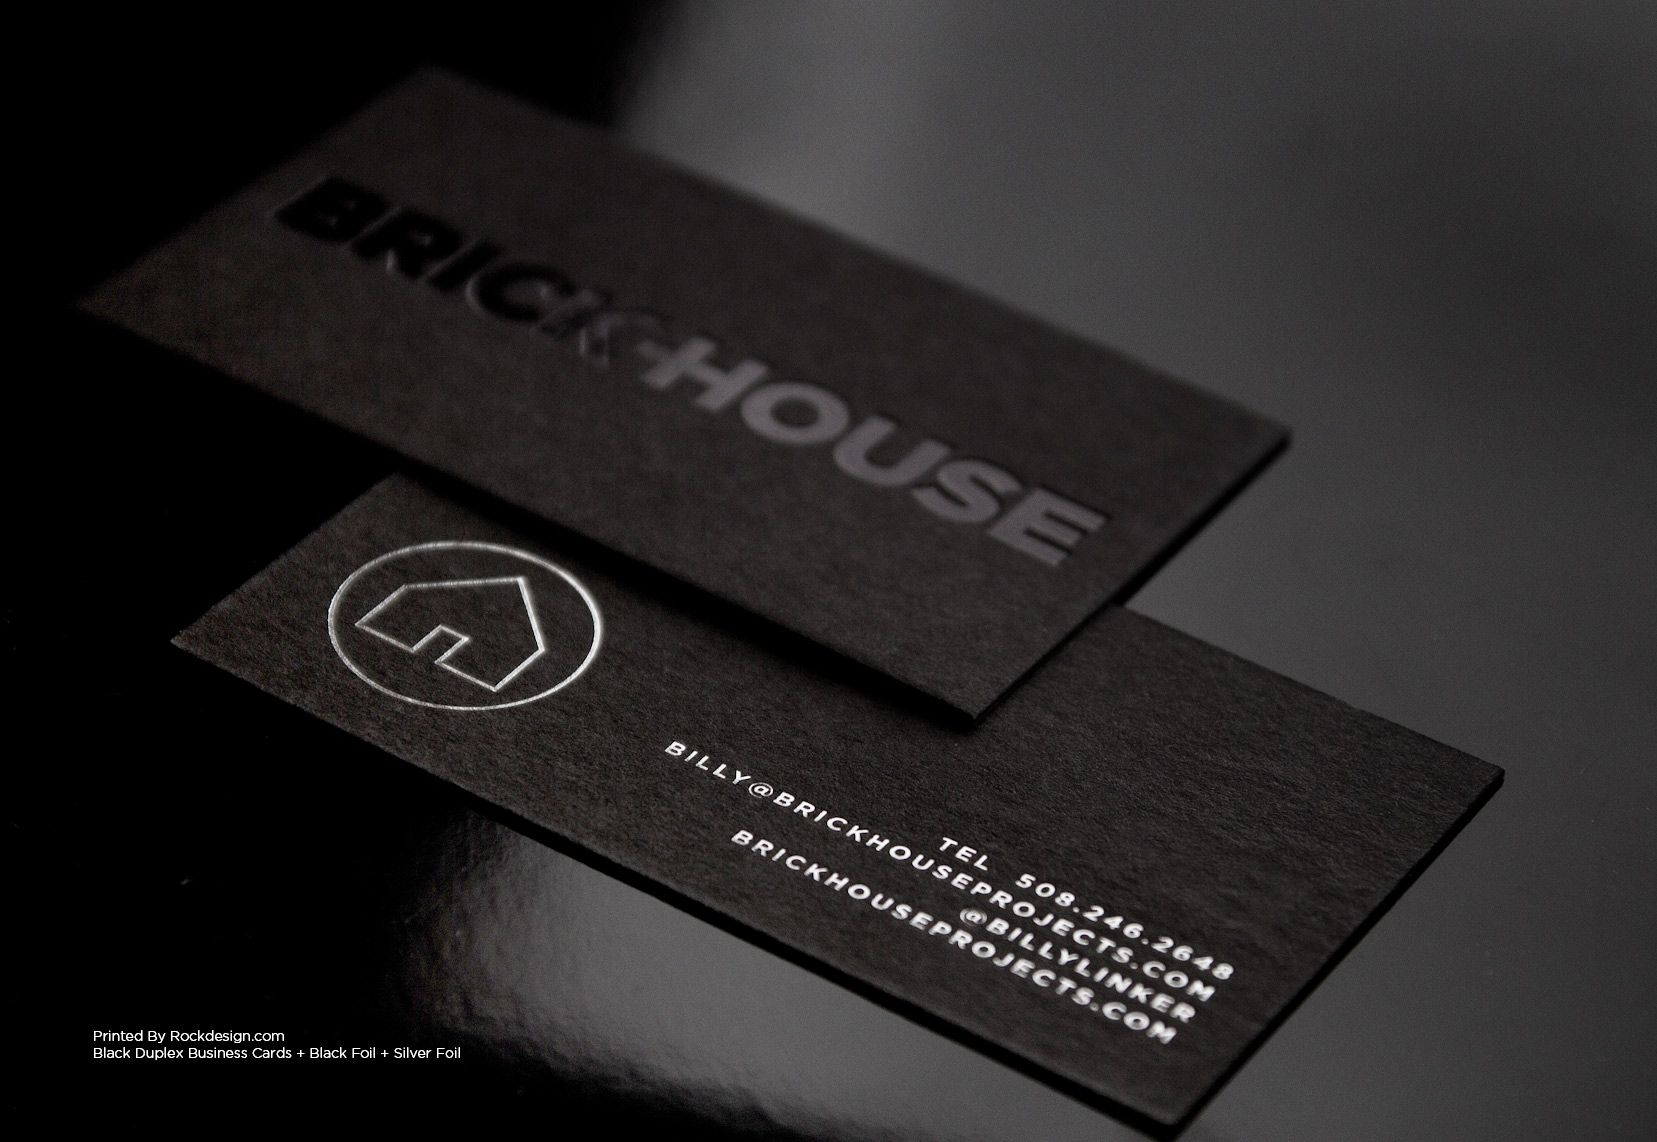 Black and silver foil stamp on black cards biz cards pinterest black and silver foil stamp on black cards magicingreecefo Image collections